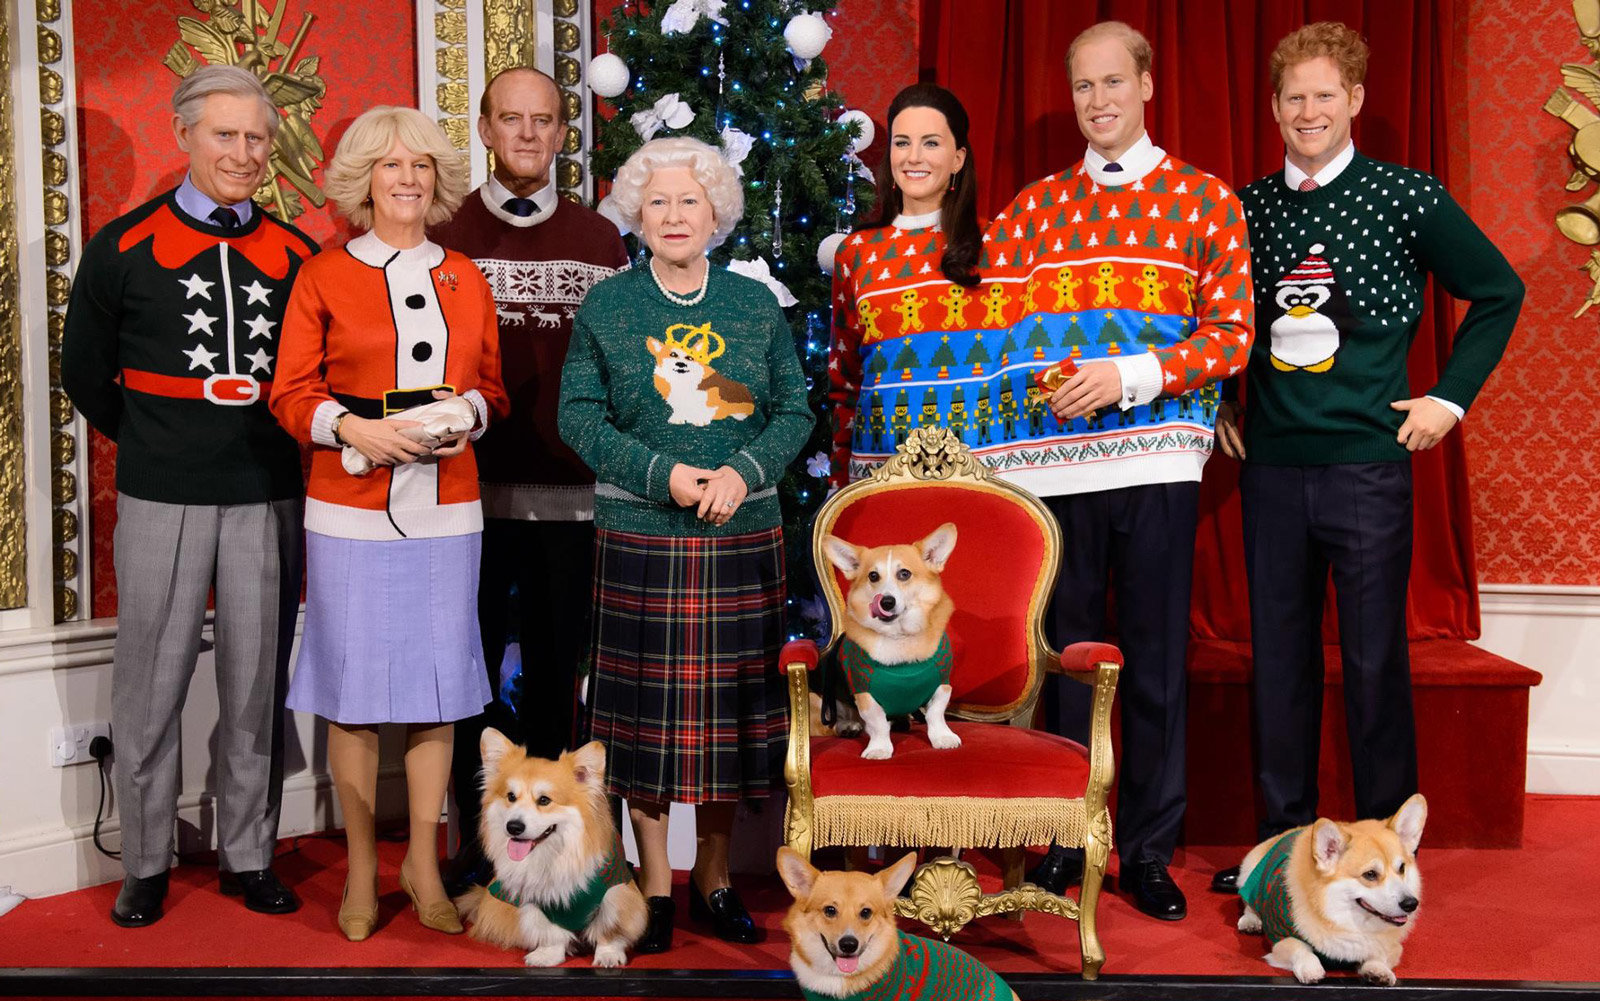 Royal Family Christmas Sweaters At Madame Tussauds